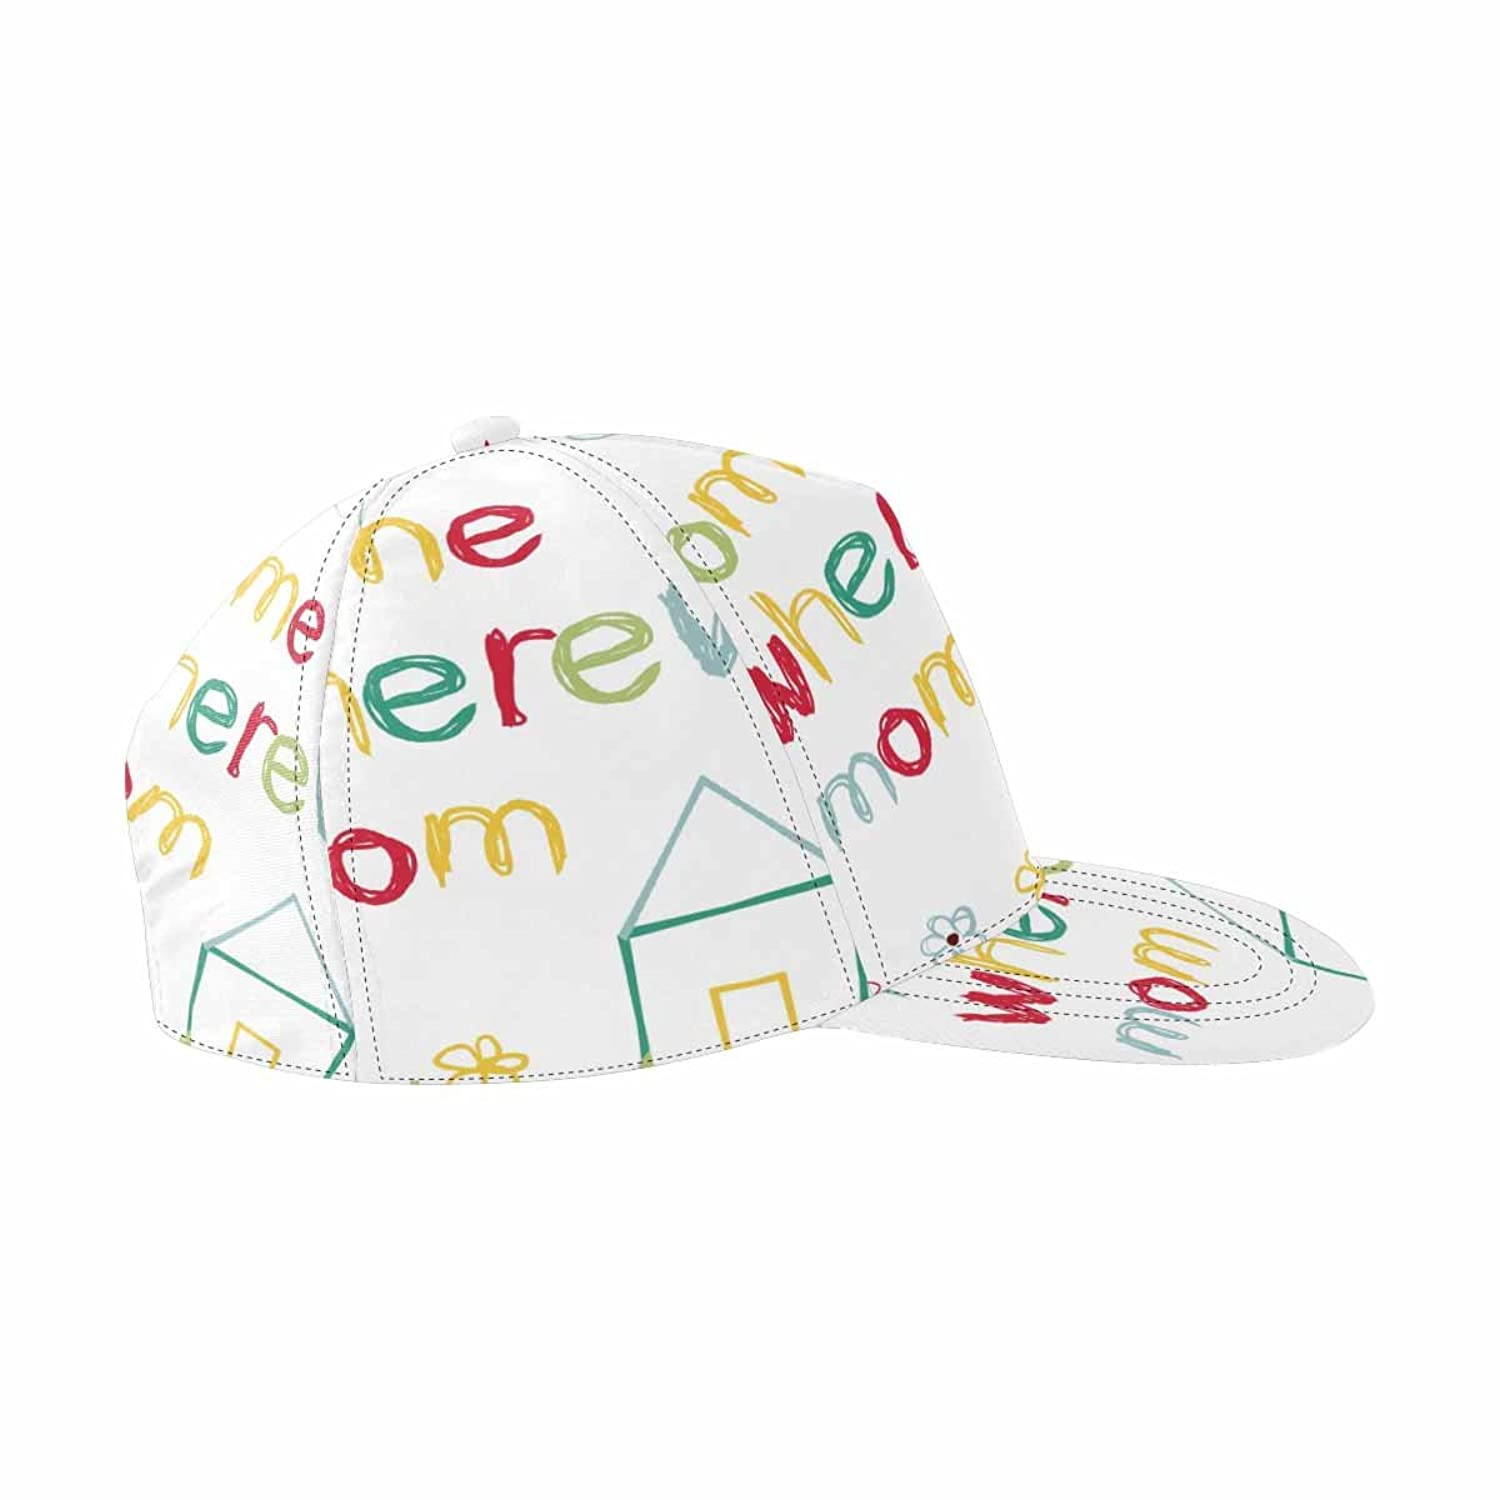 InterestPrint HAT レディース US サイズ: adjustable strap B07DN59VGM